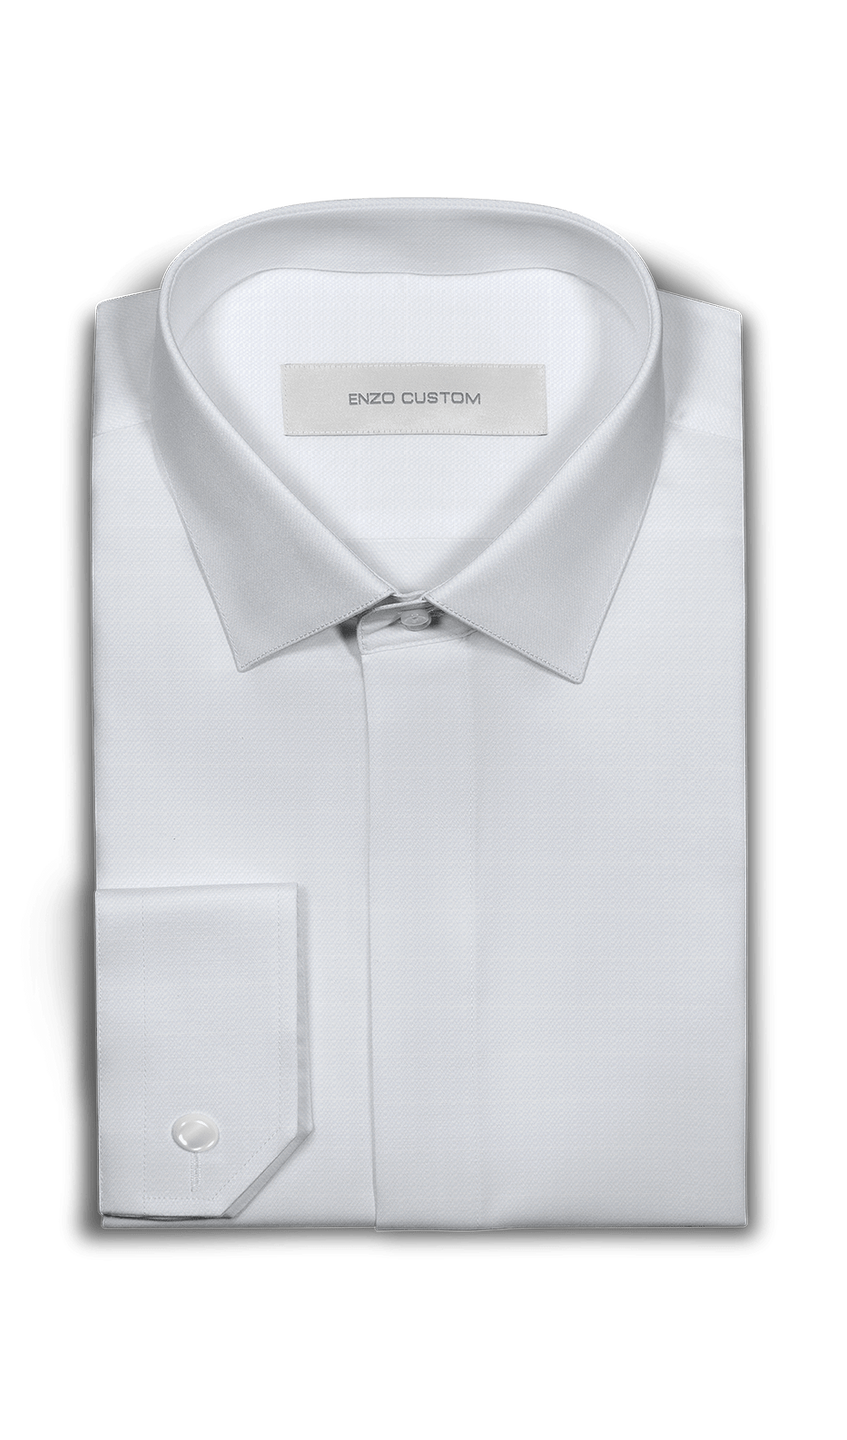 White Textured Dress Shirt - Enzo Custom